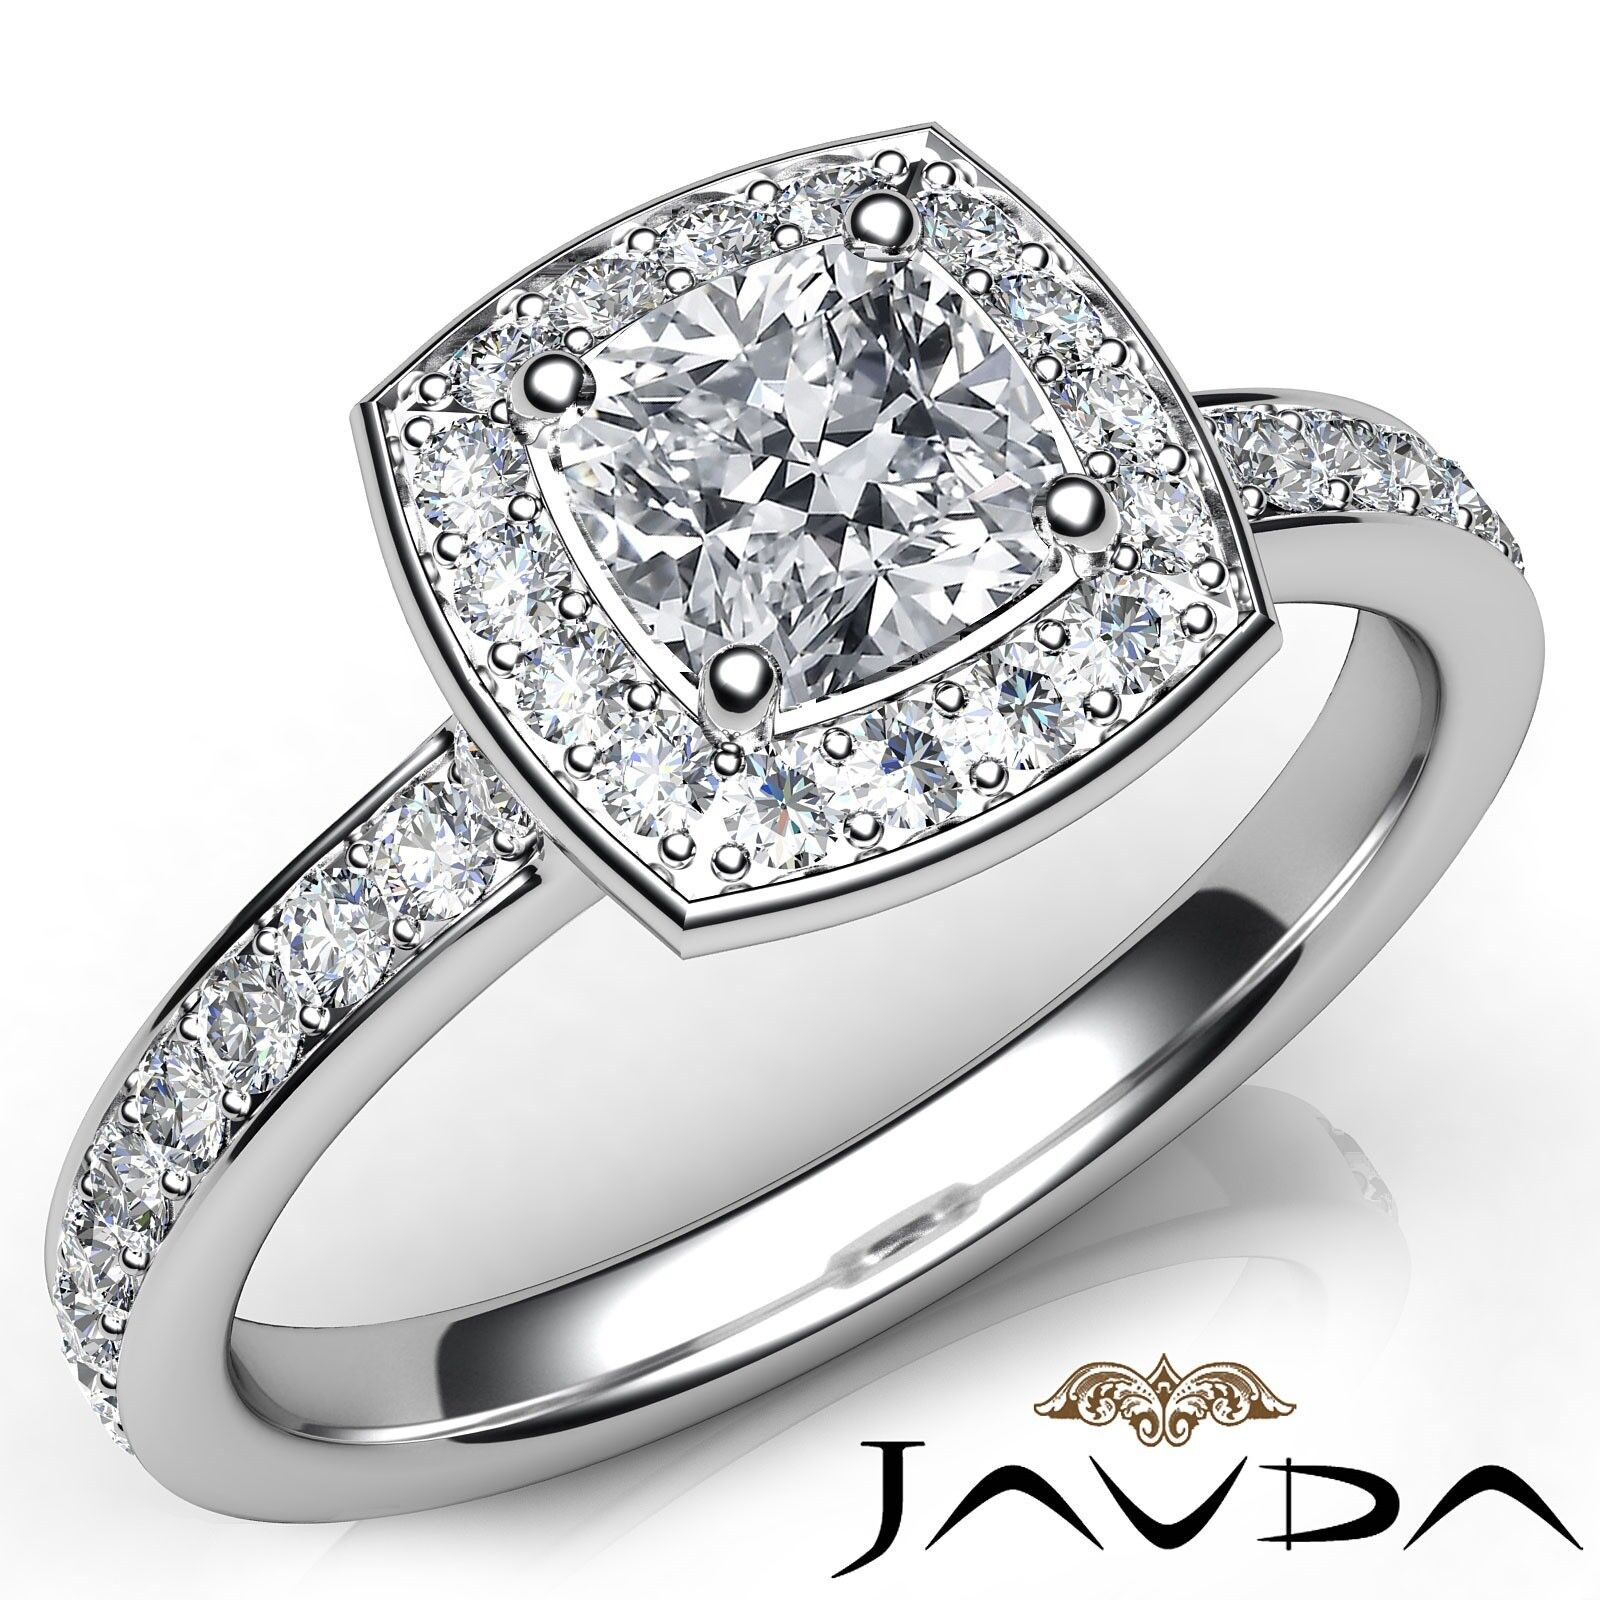 0.99ctw Halo Pave Set Wedding Cushion Diamond Engagement Ring GIA H-VS2 W Gold